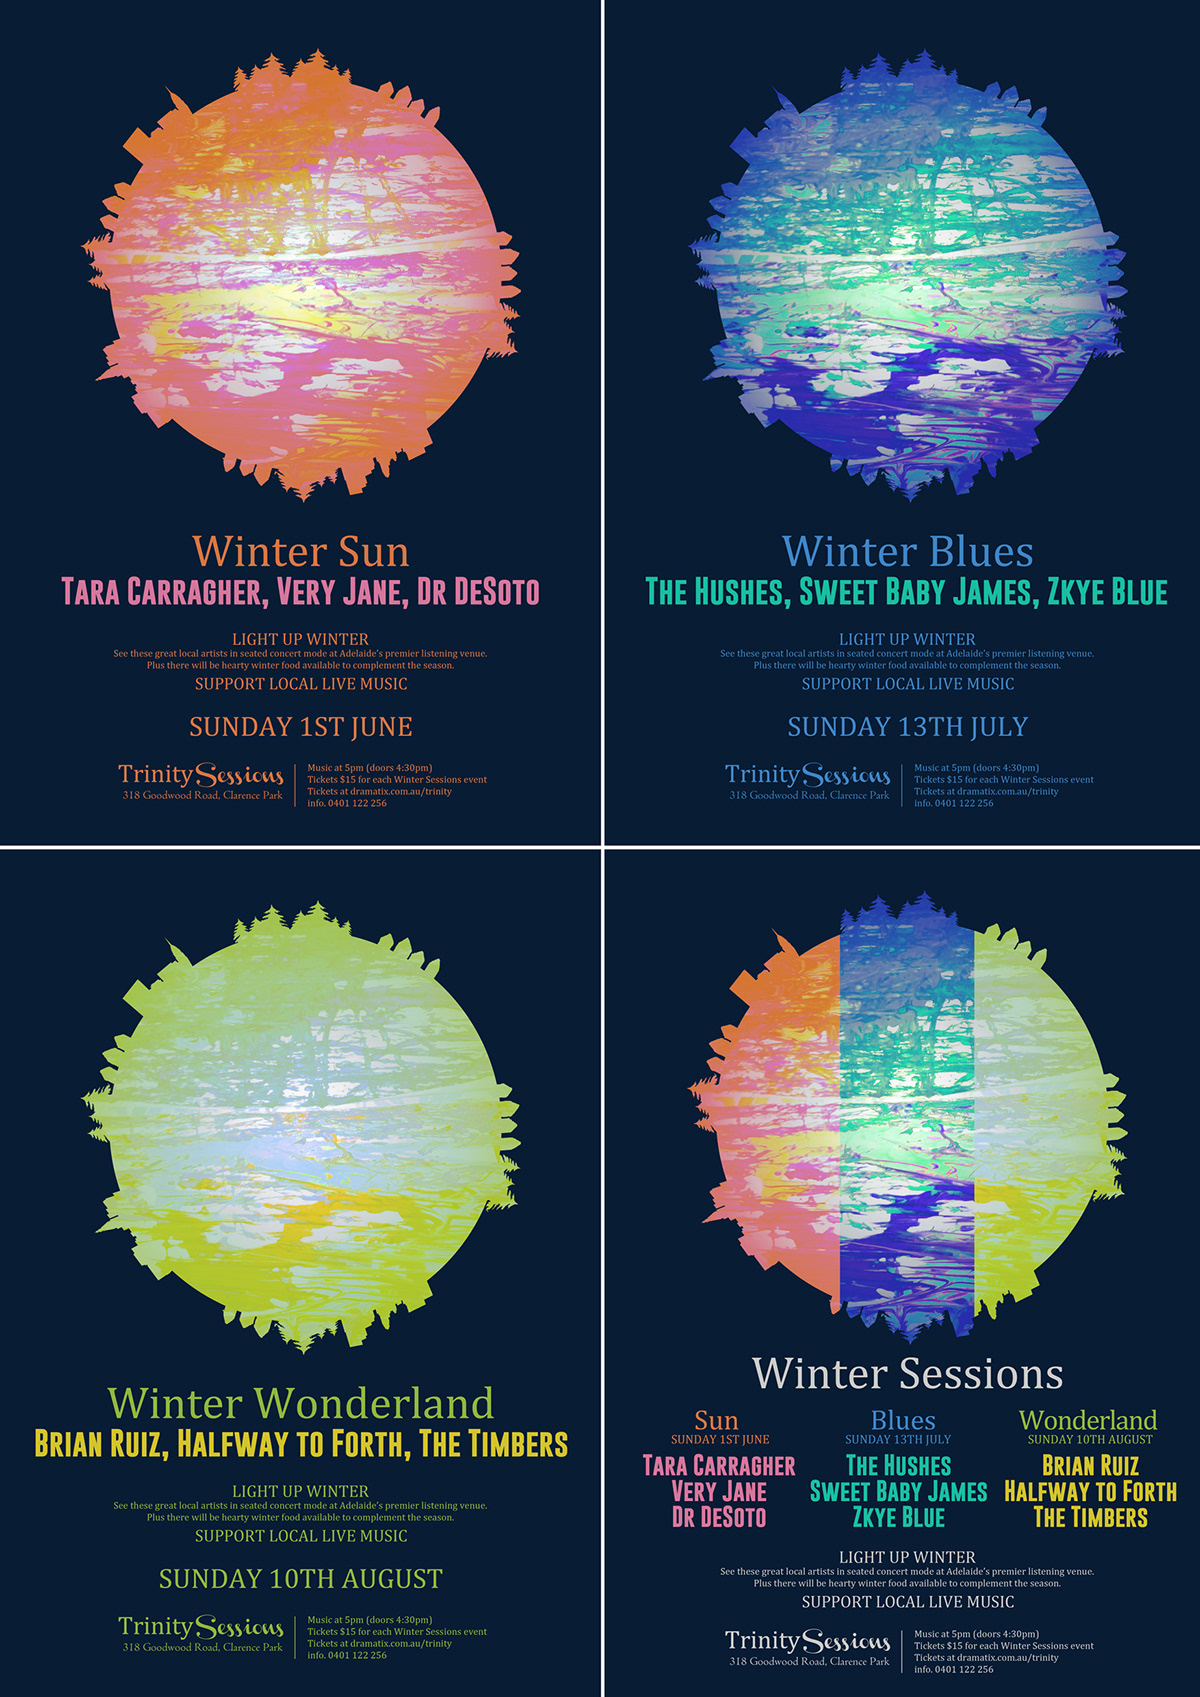 TRINITY SESSIONS - Winter Sessions, concert series 2014 on Behance